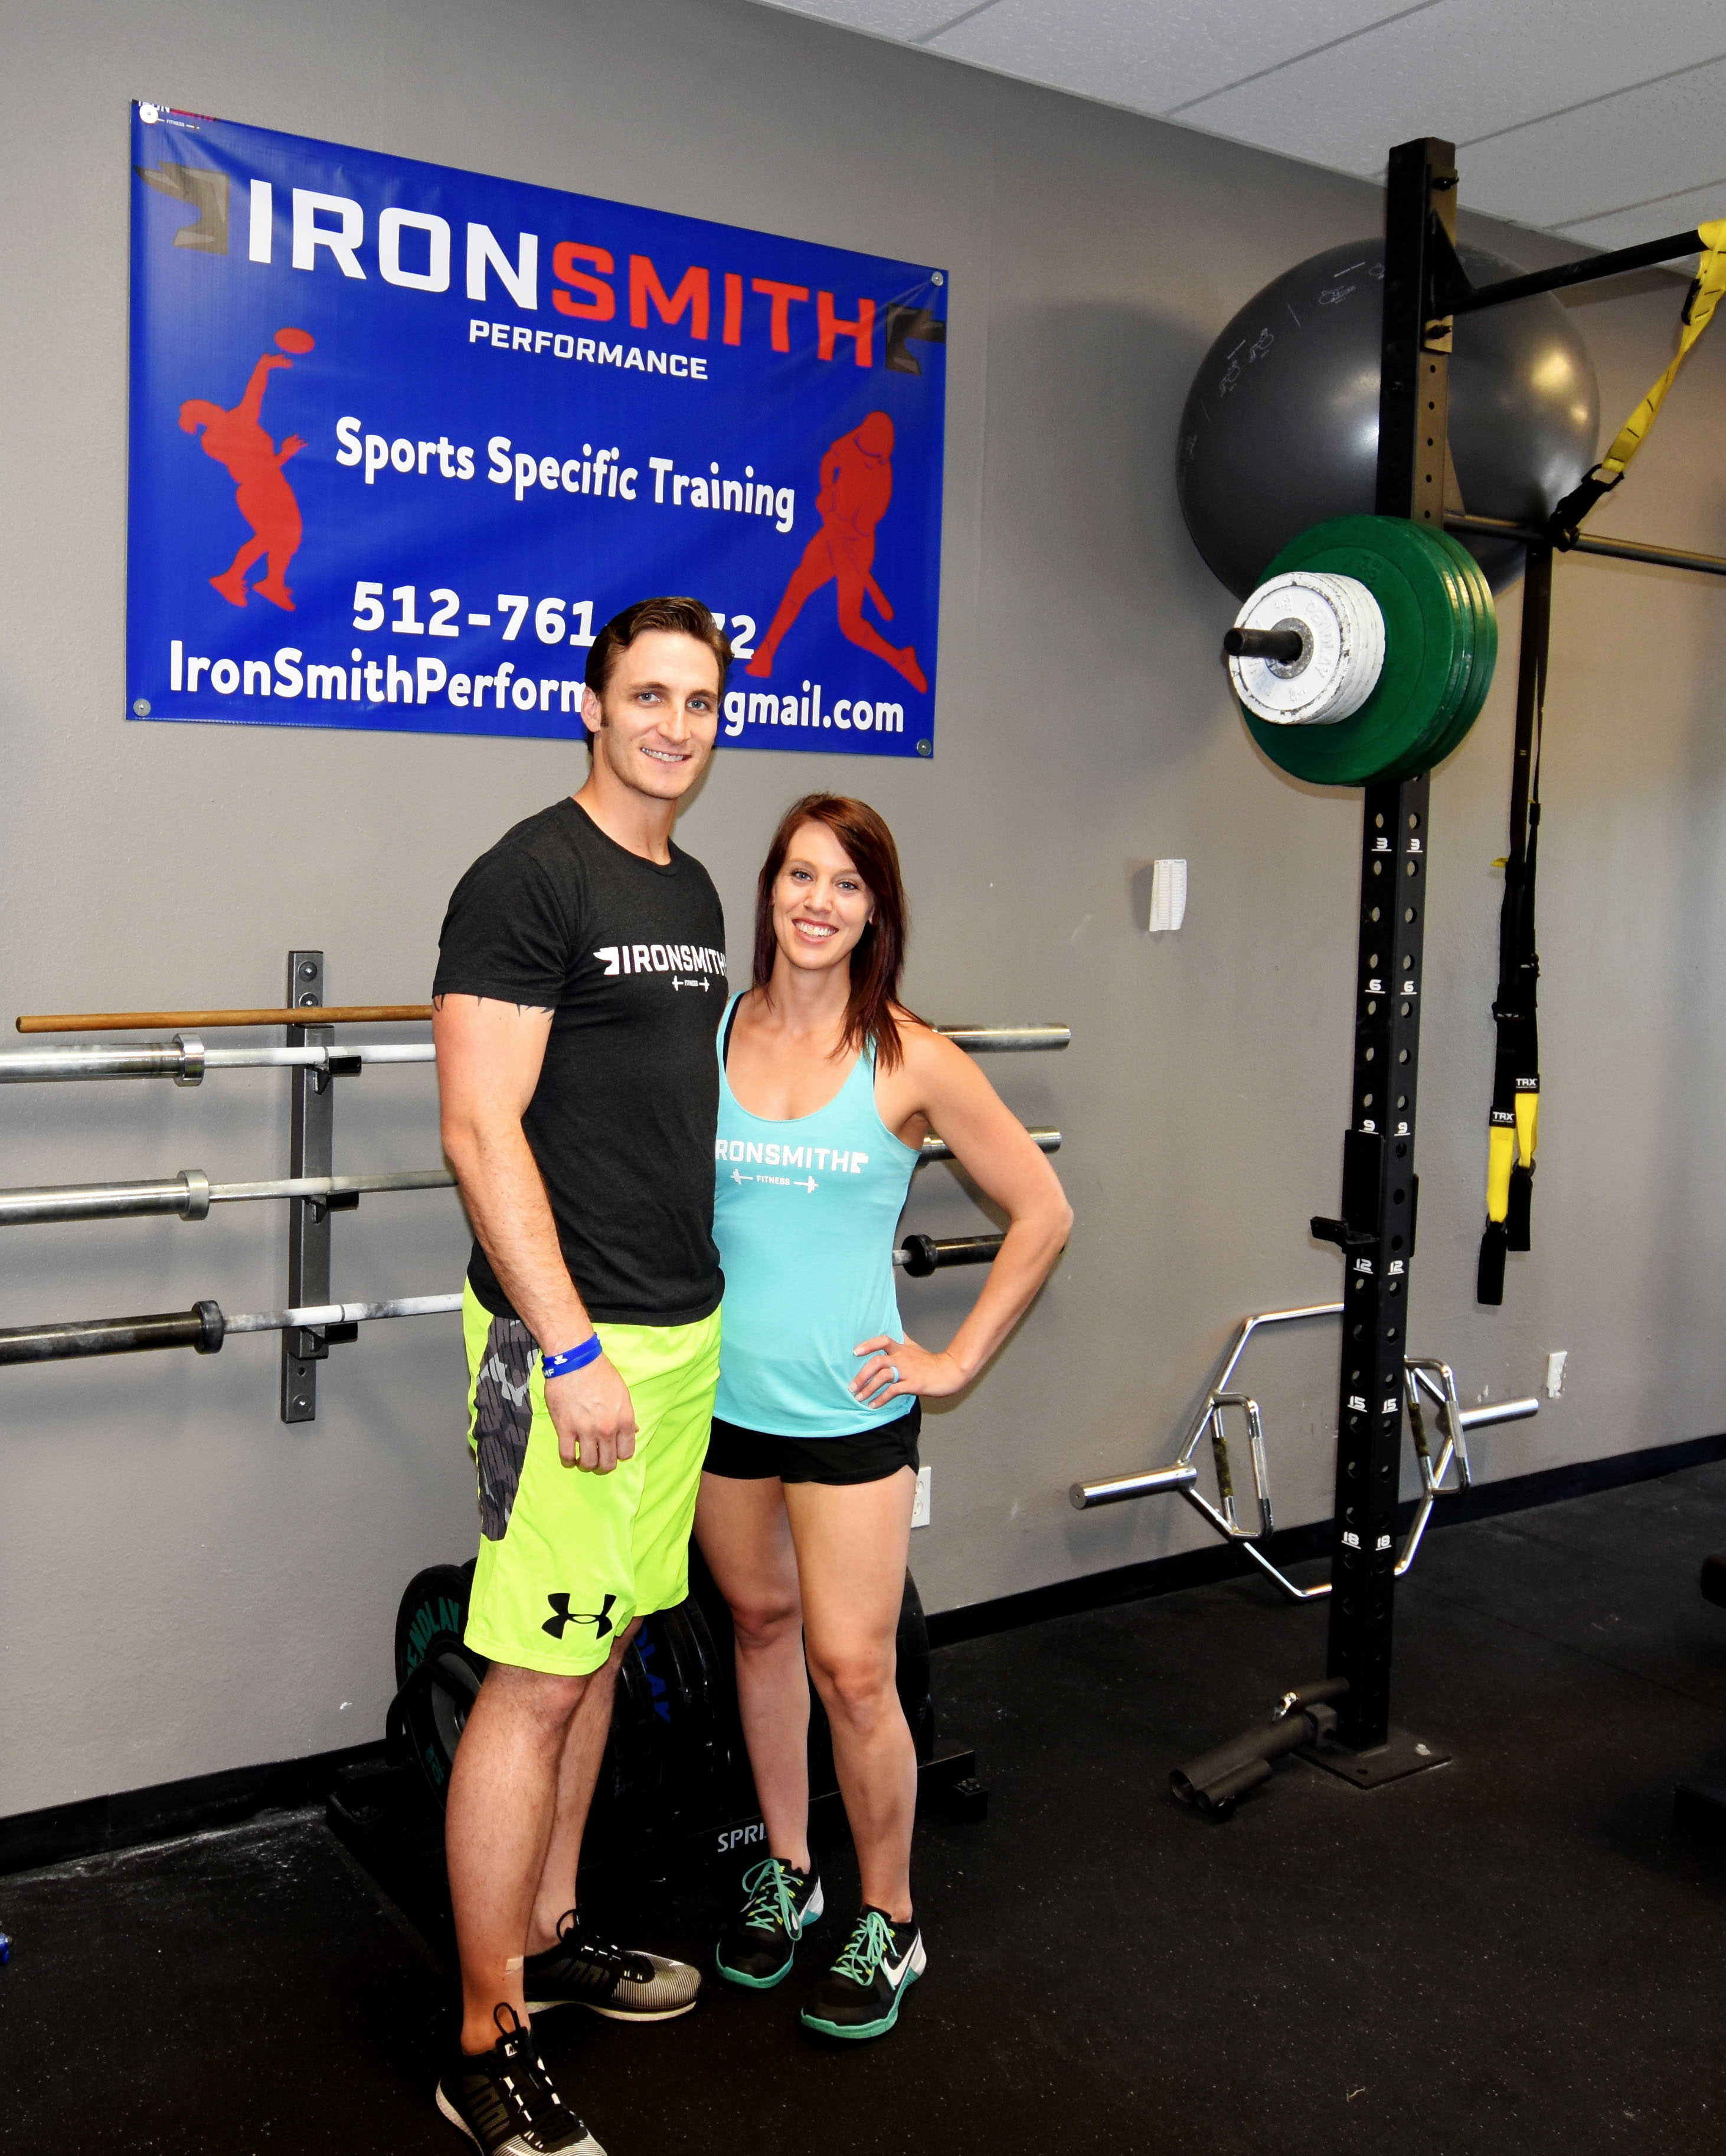 Iron Smith Fitness in Southwest Austin, meet the Owner Ryan and Sarah Smith